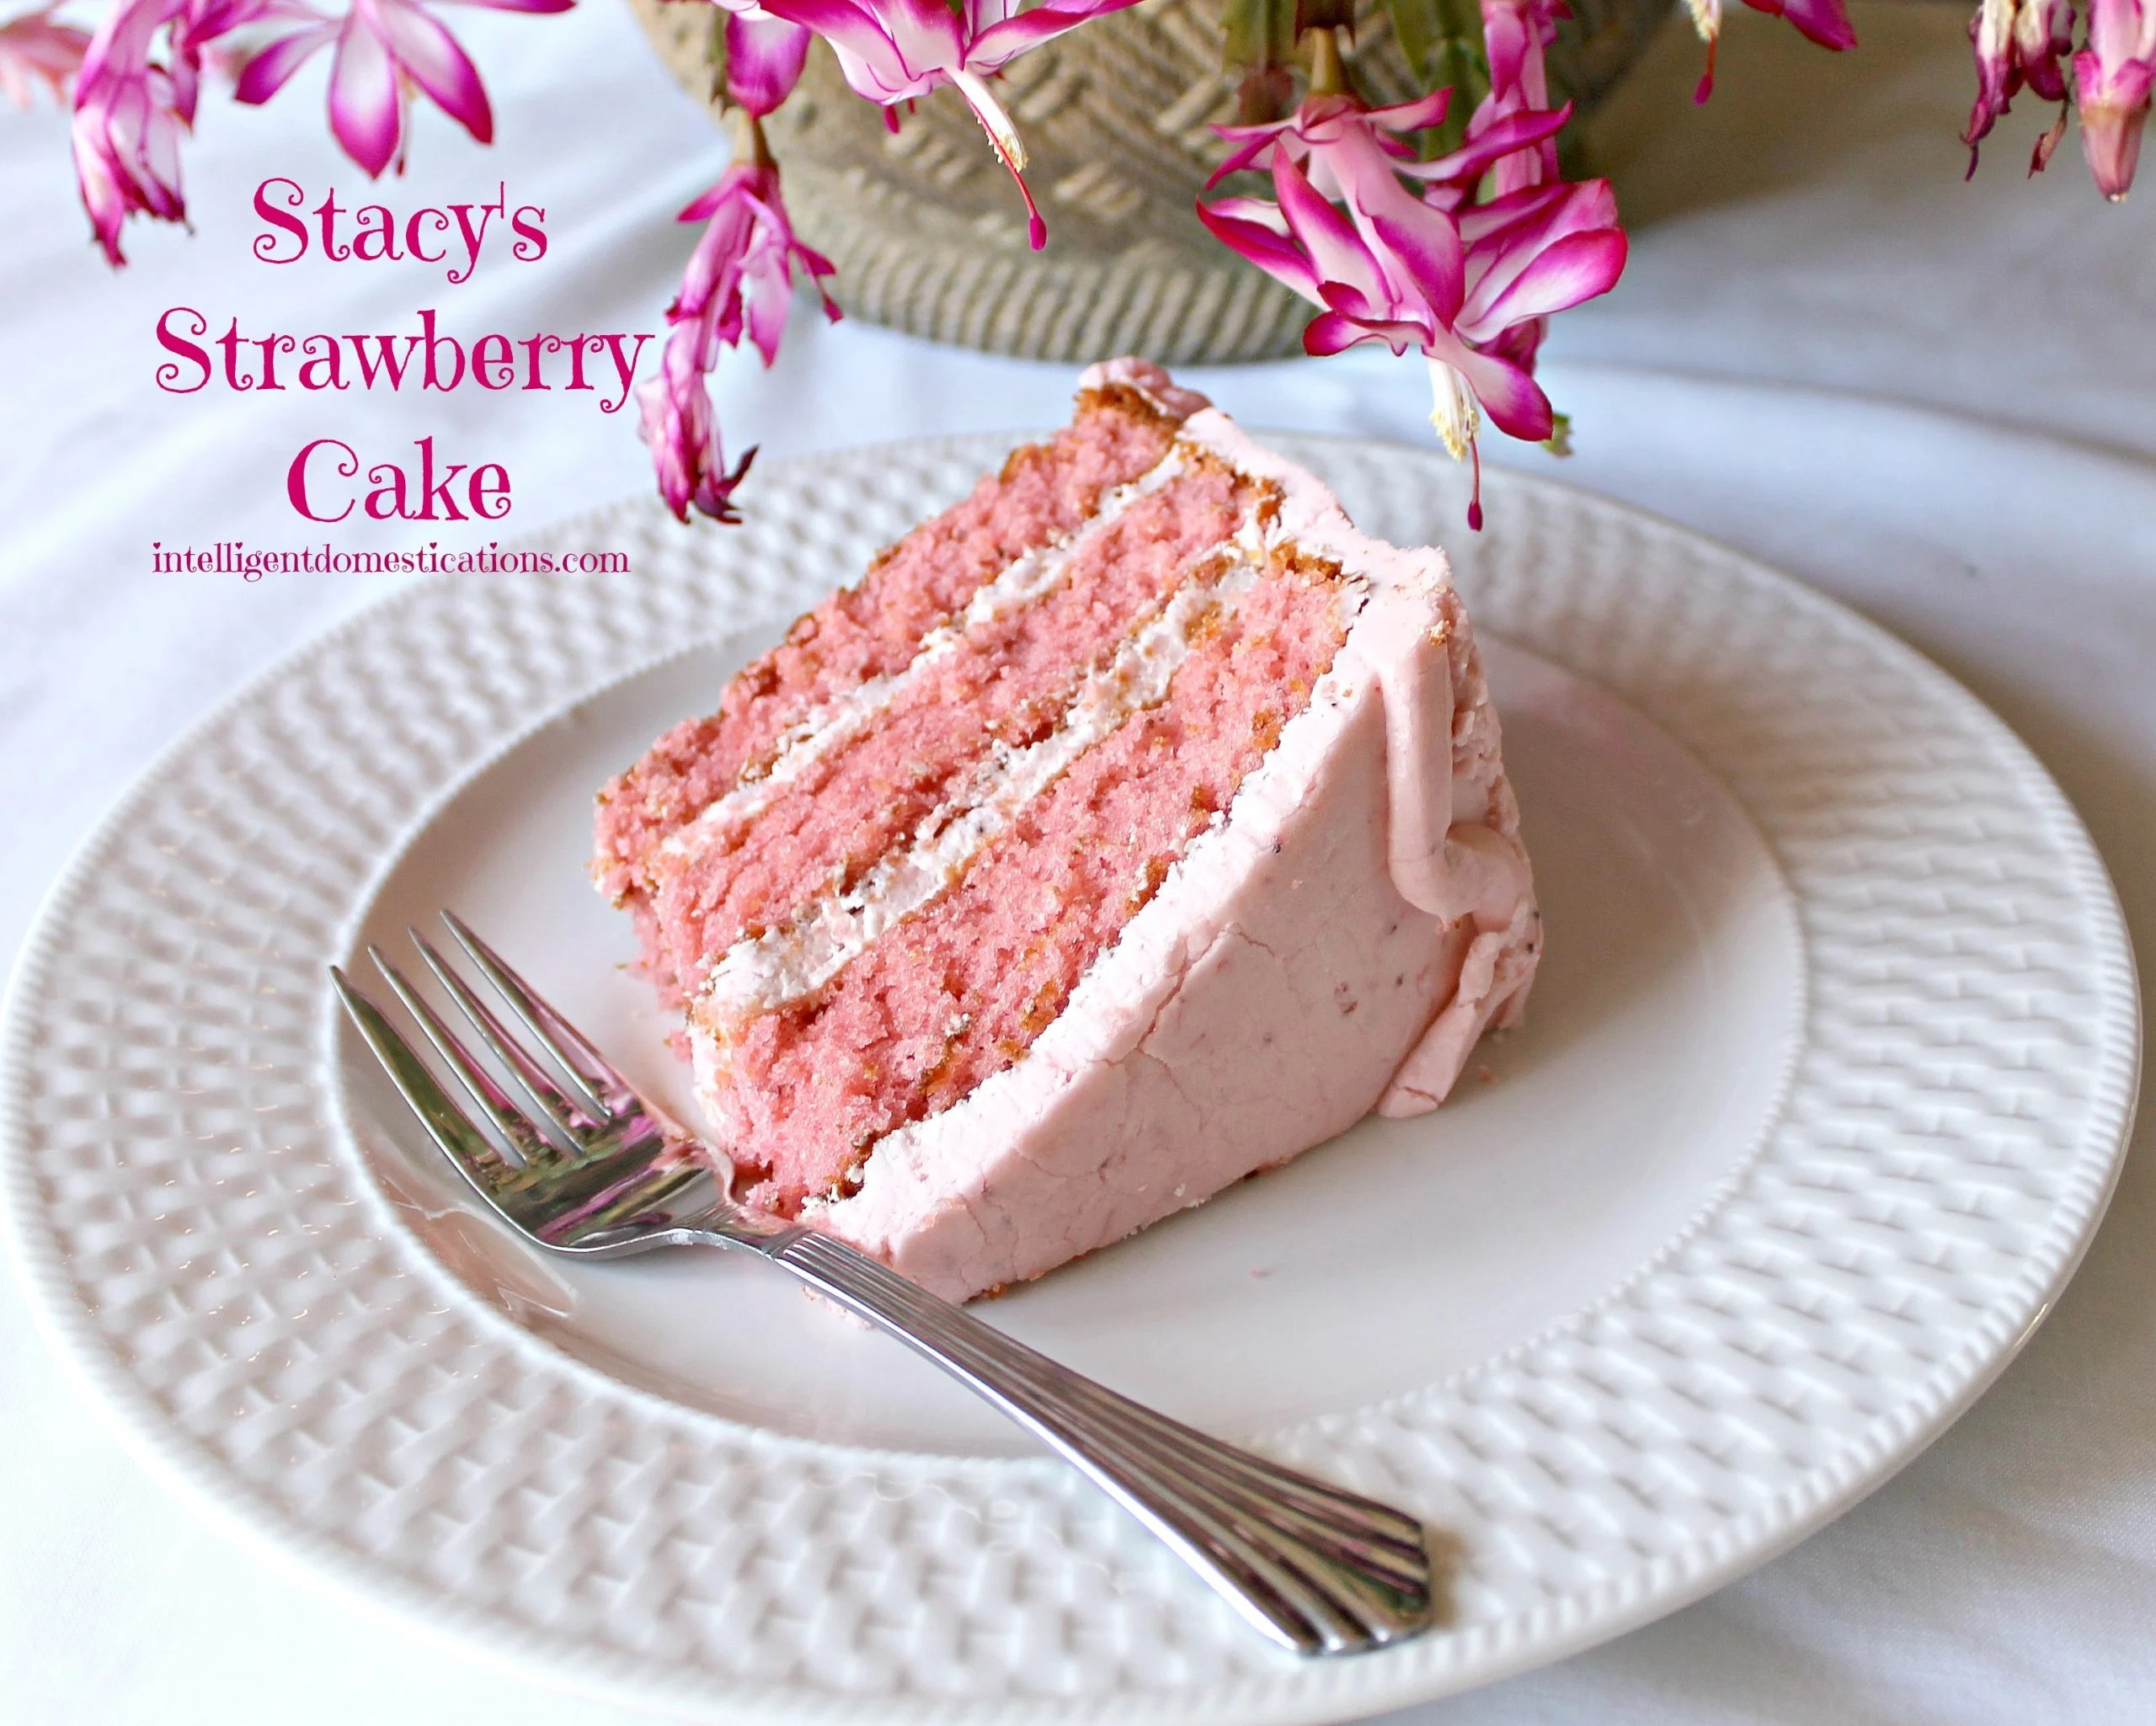 Strawberry Cake Icing Recipes: Stacy's Strawberry Cake With Strawberry Butter Cream